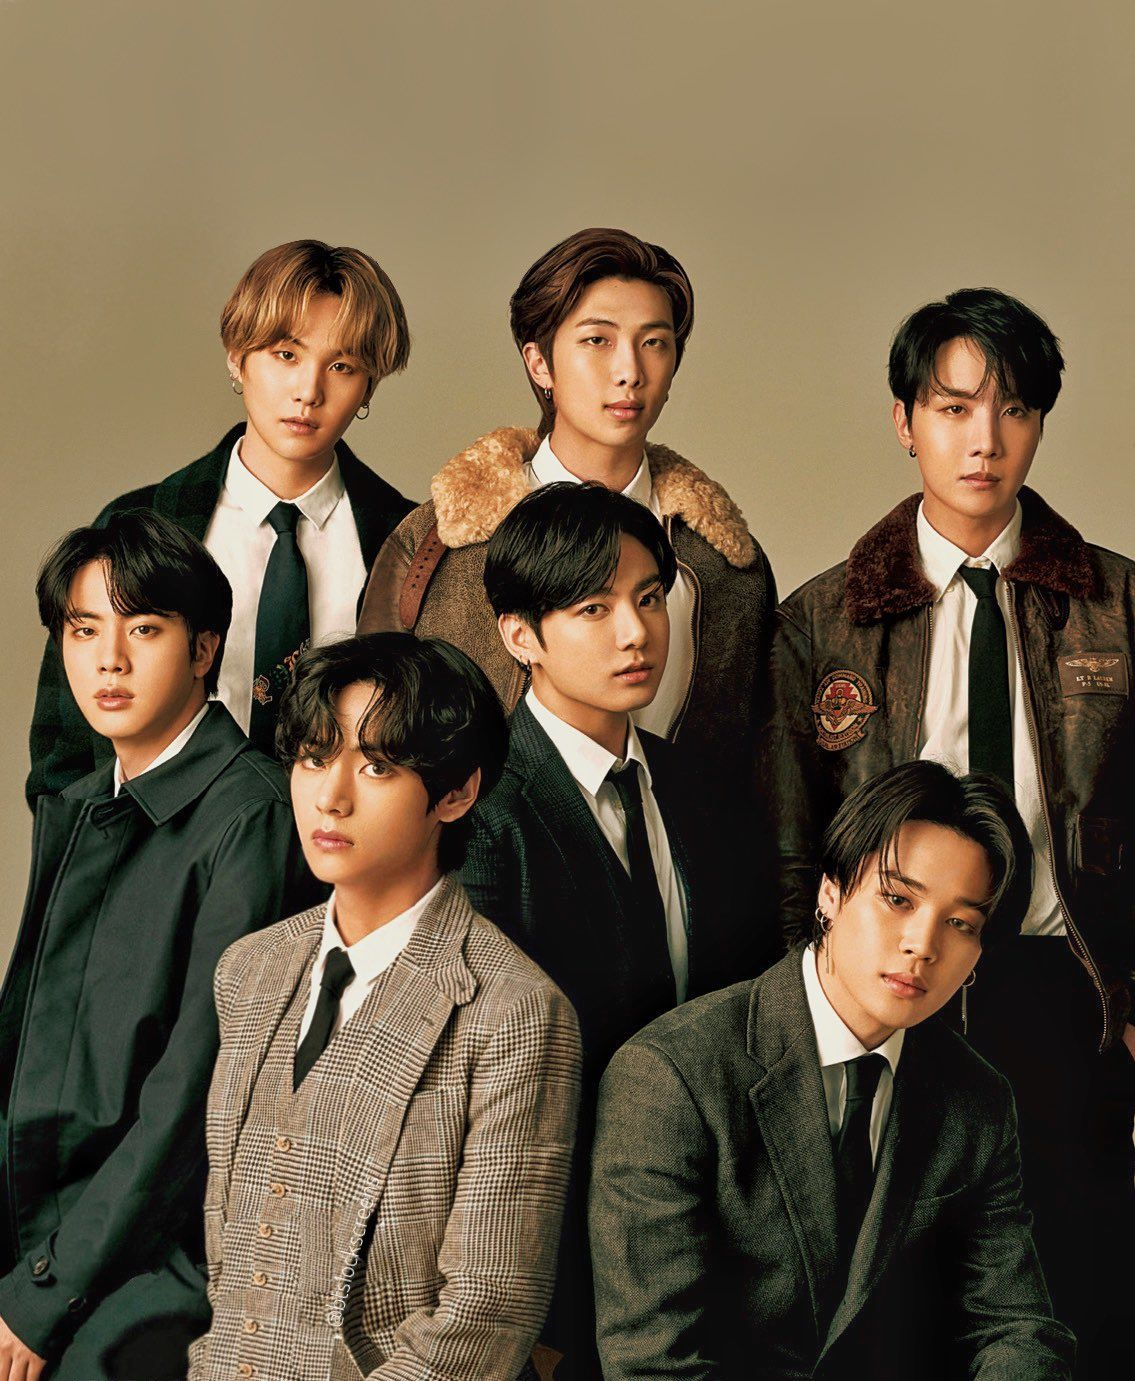 Here On Twitter Photoshoot Bts Bts Concept Photo Bts Group Picture See more ideas about bts, bangtan sonyeondan, bangtan. here on twitter photoshoot bts bts